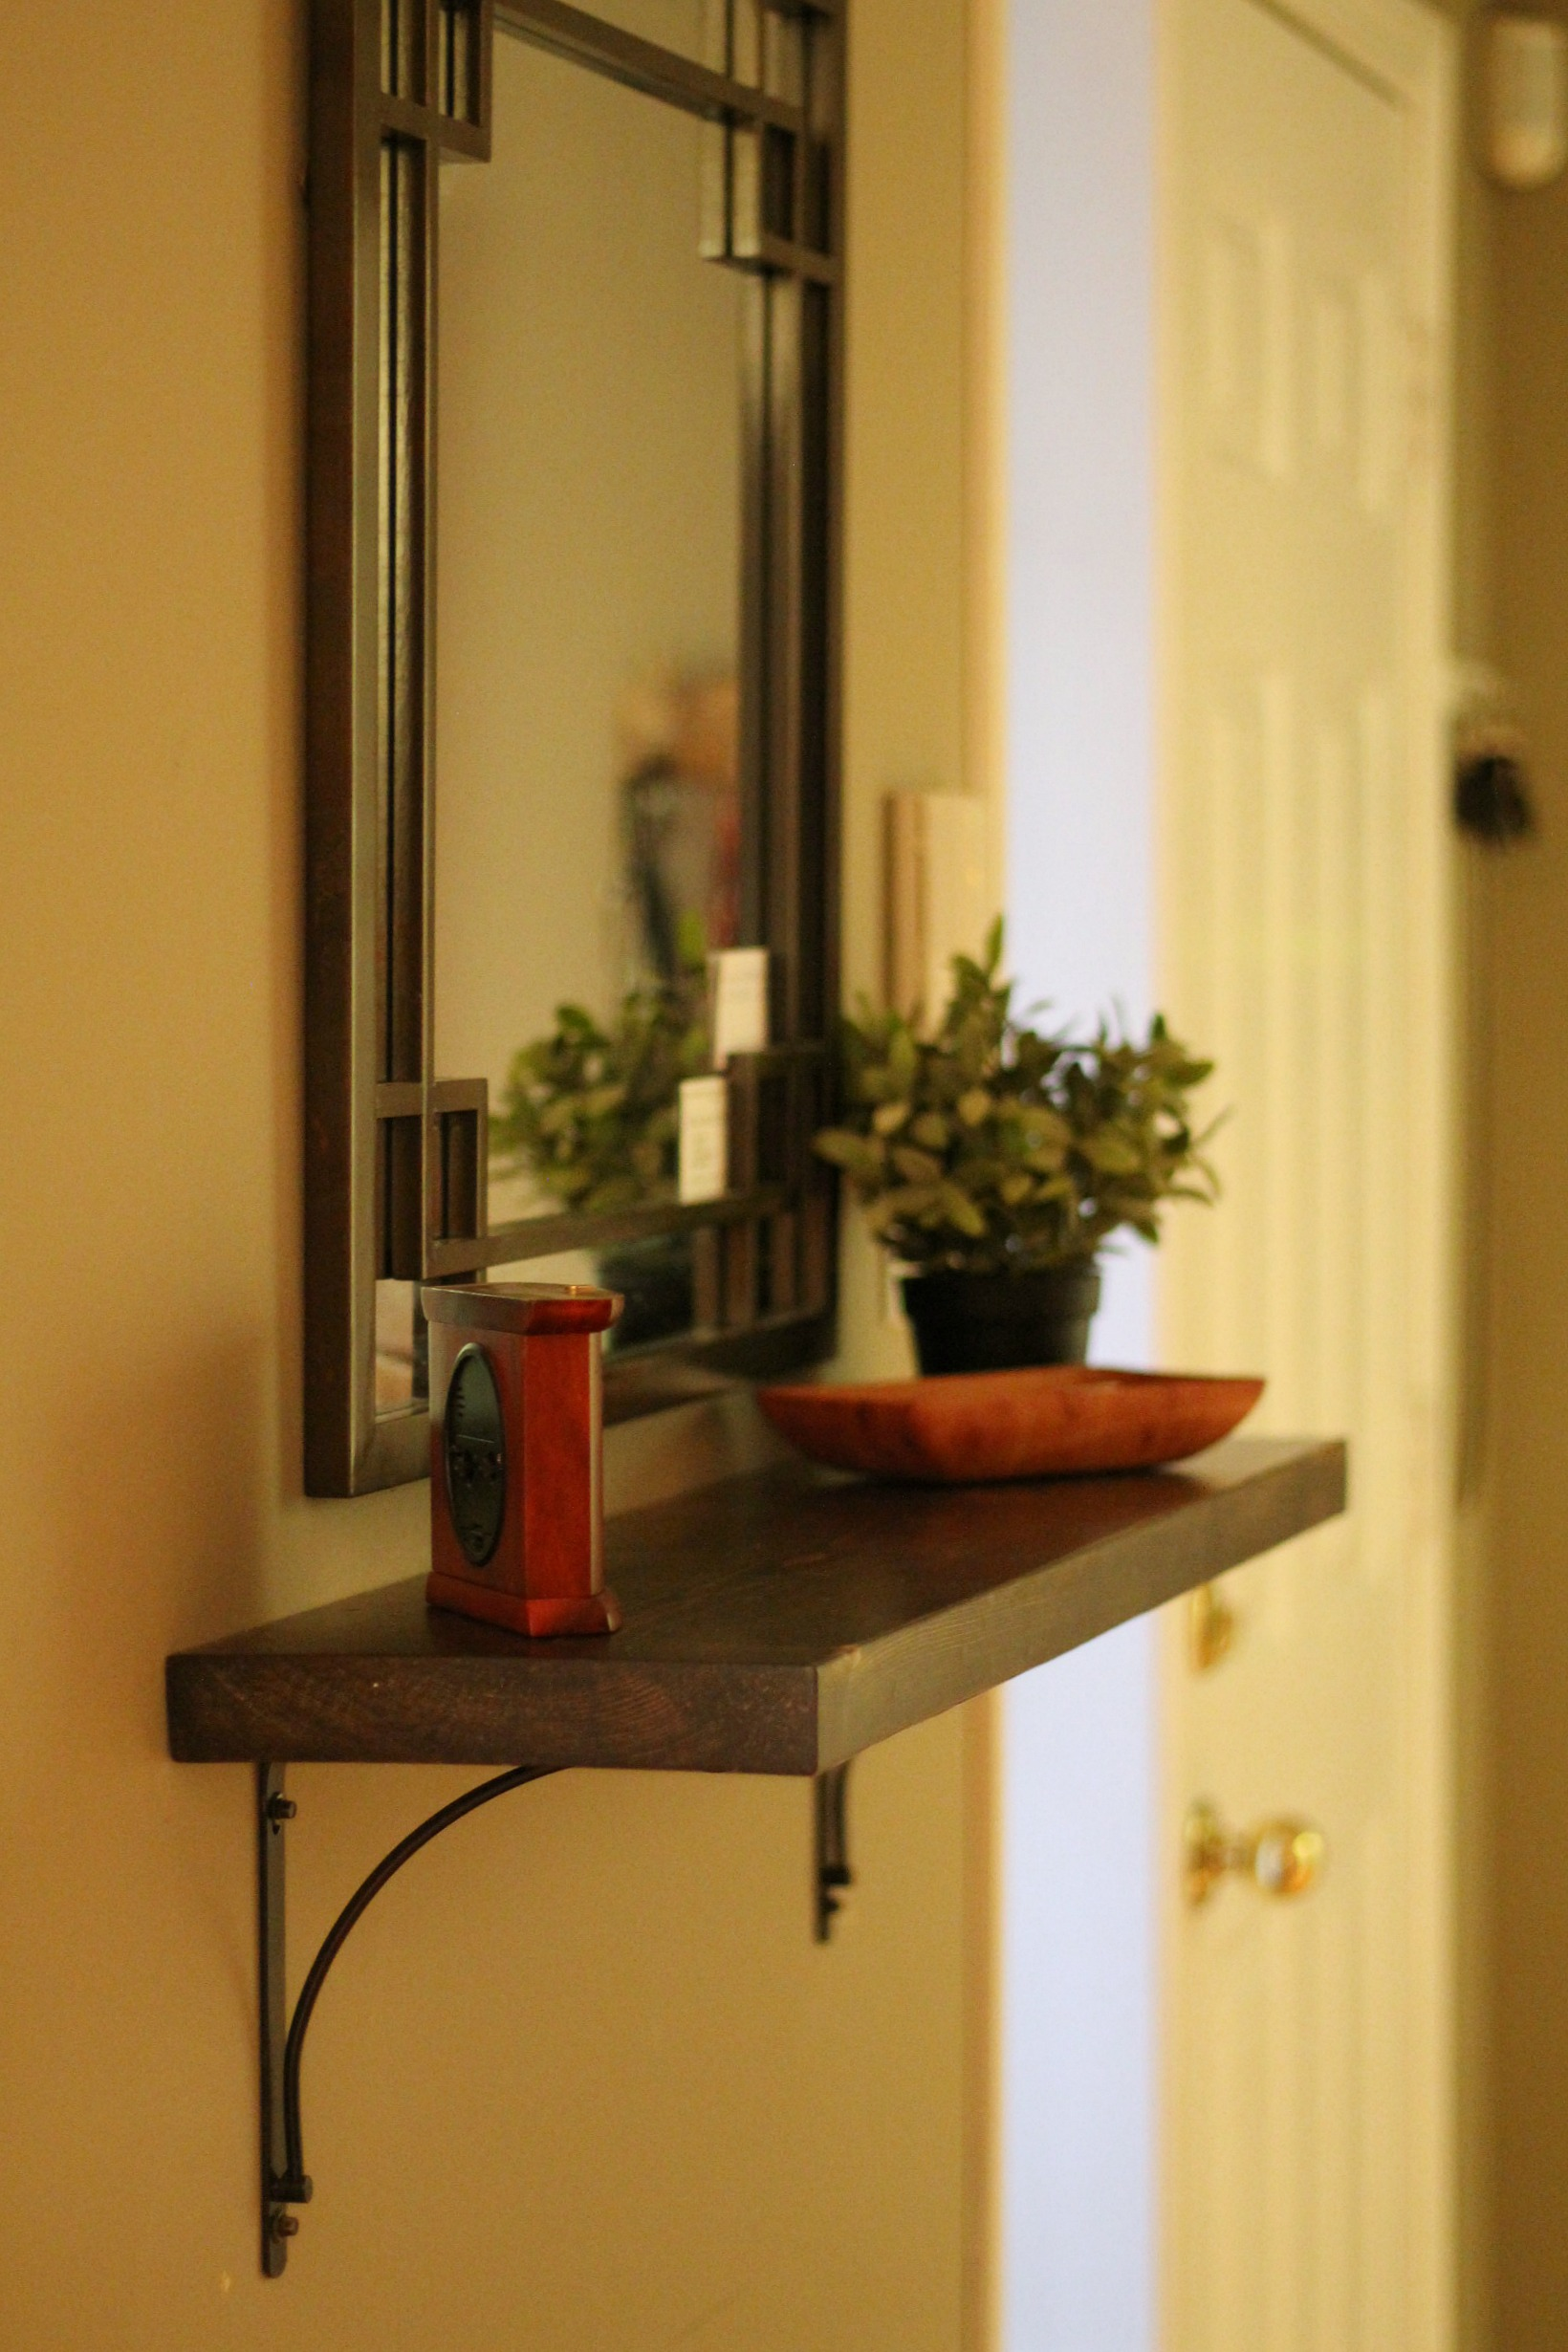 DIY Entryway Shelf